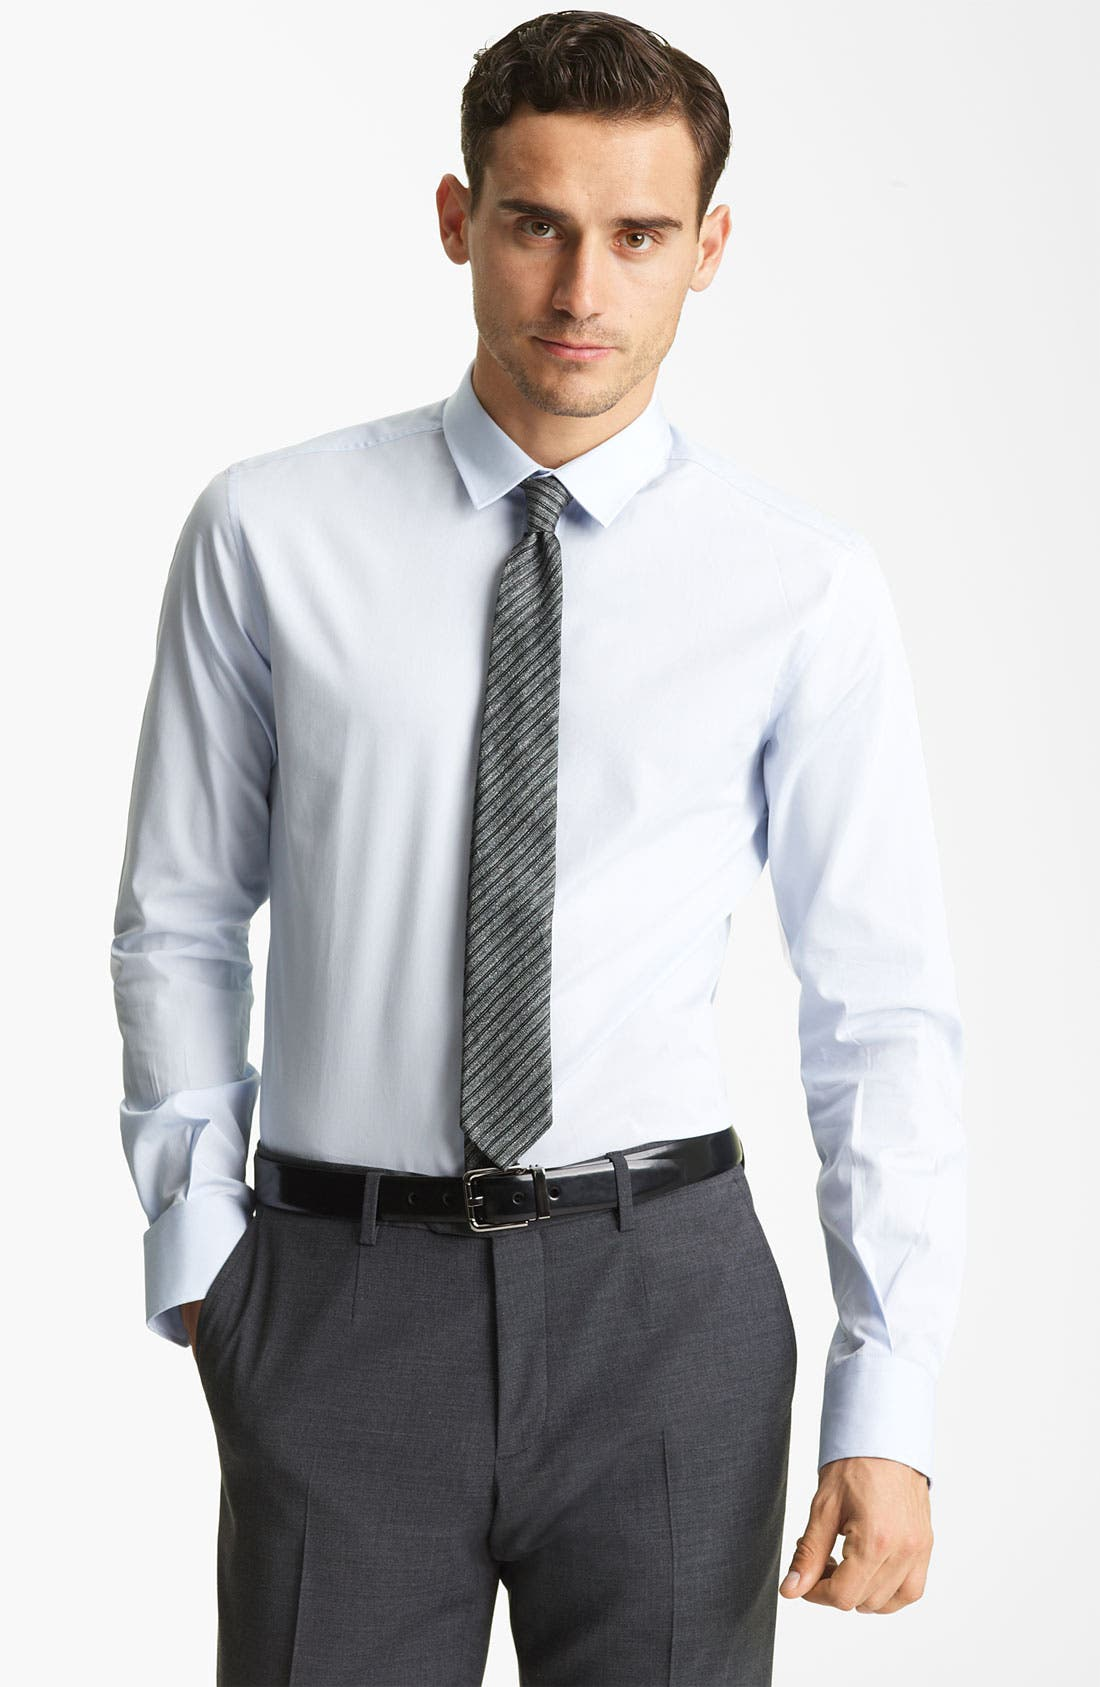 Main Image - Dolce&Gabbana Slim Fit Dress Shirt